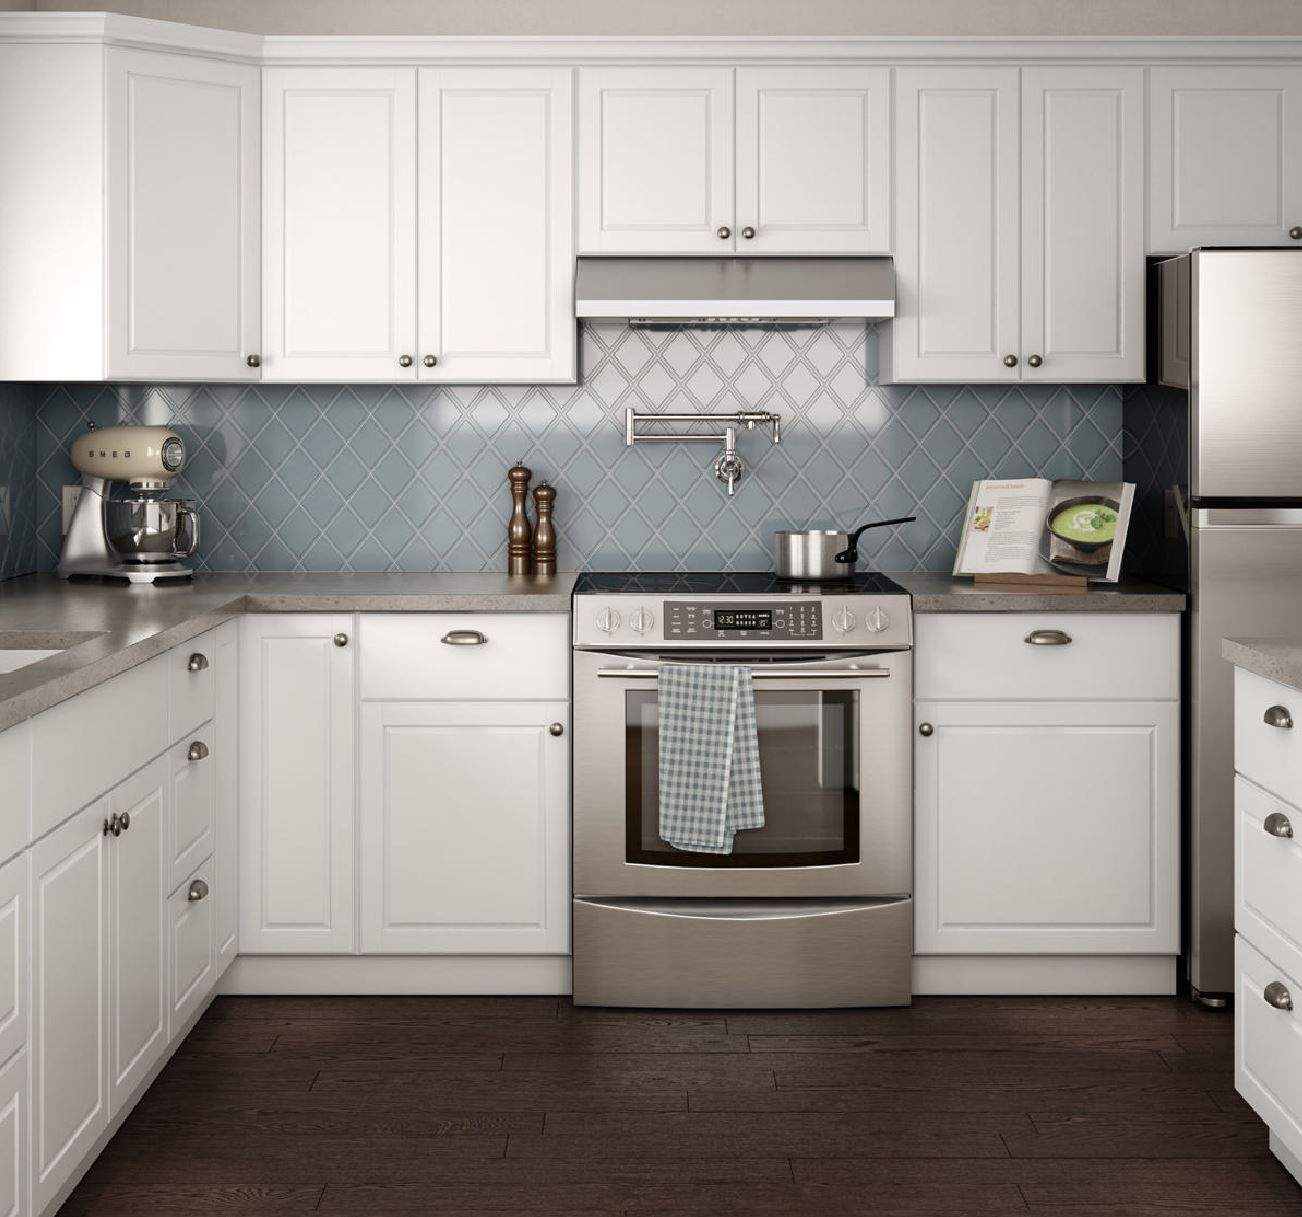 Pictures Of White Kitchens: Madison Cabinet Accessories In Warm White